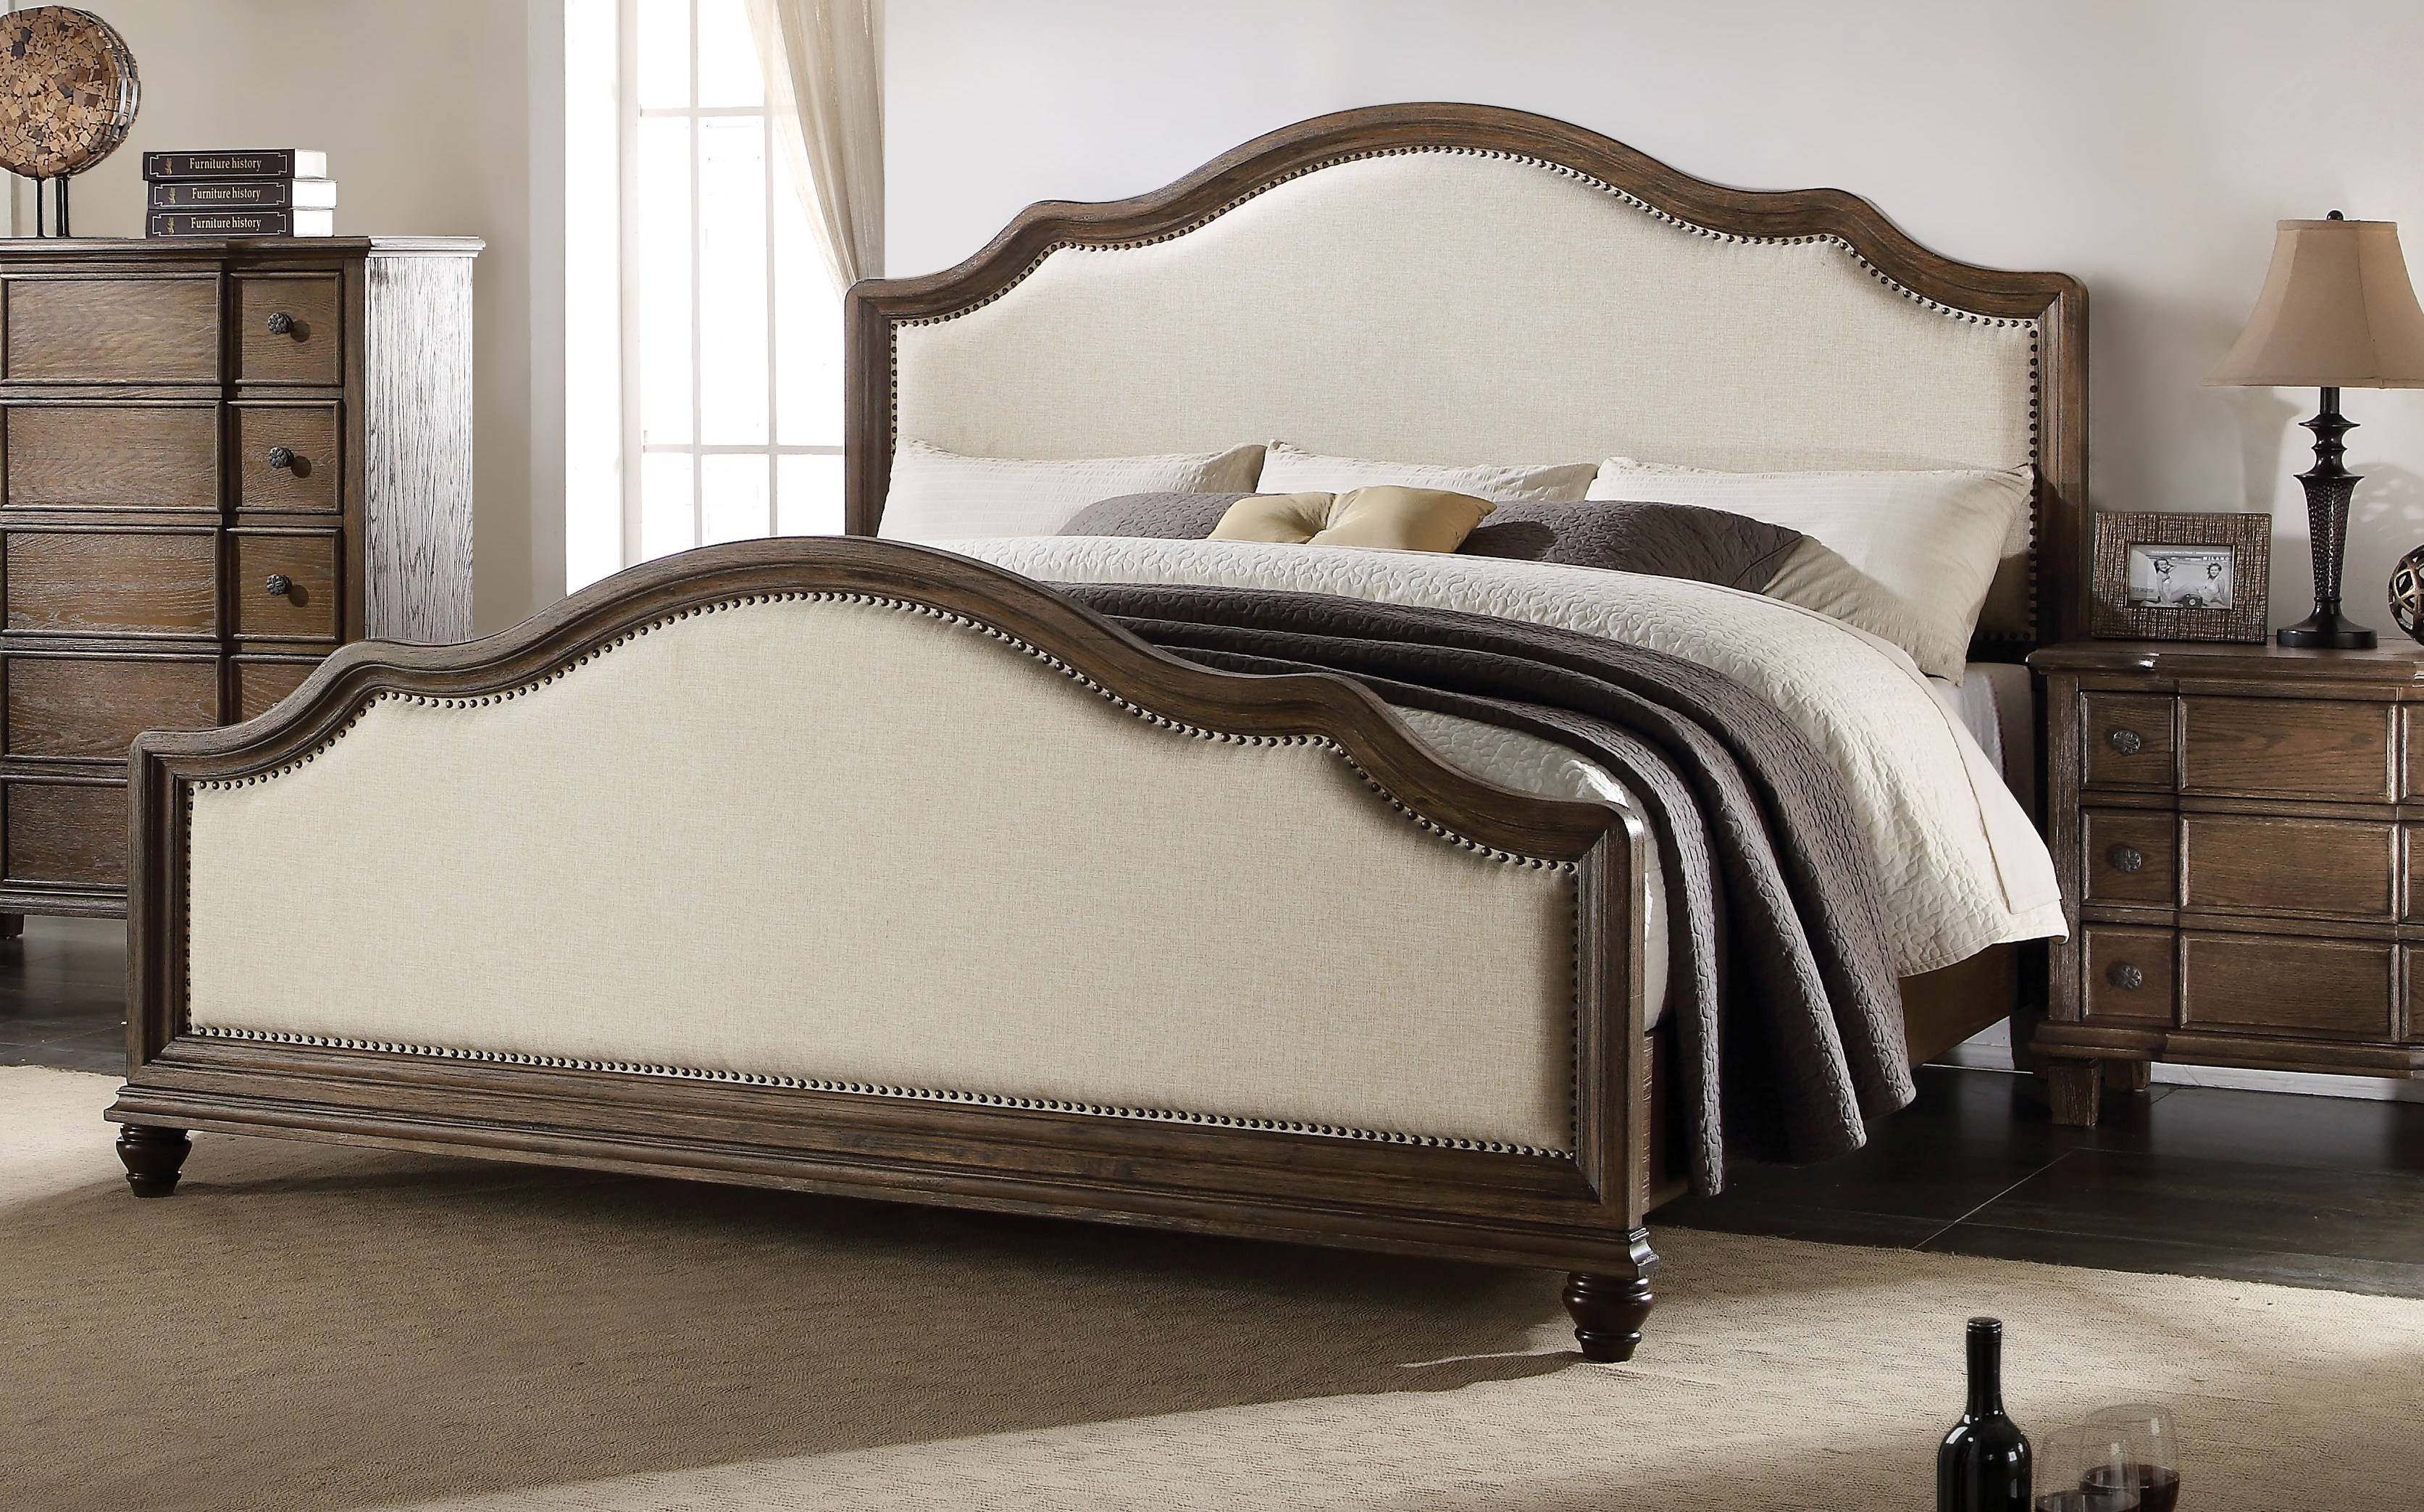 Acme furniture baudouin king bed the classy home for Chaise baudouin